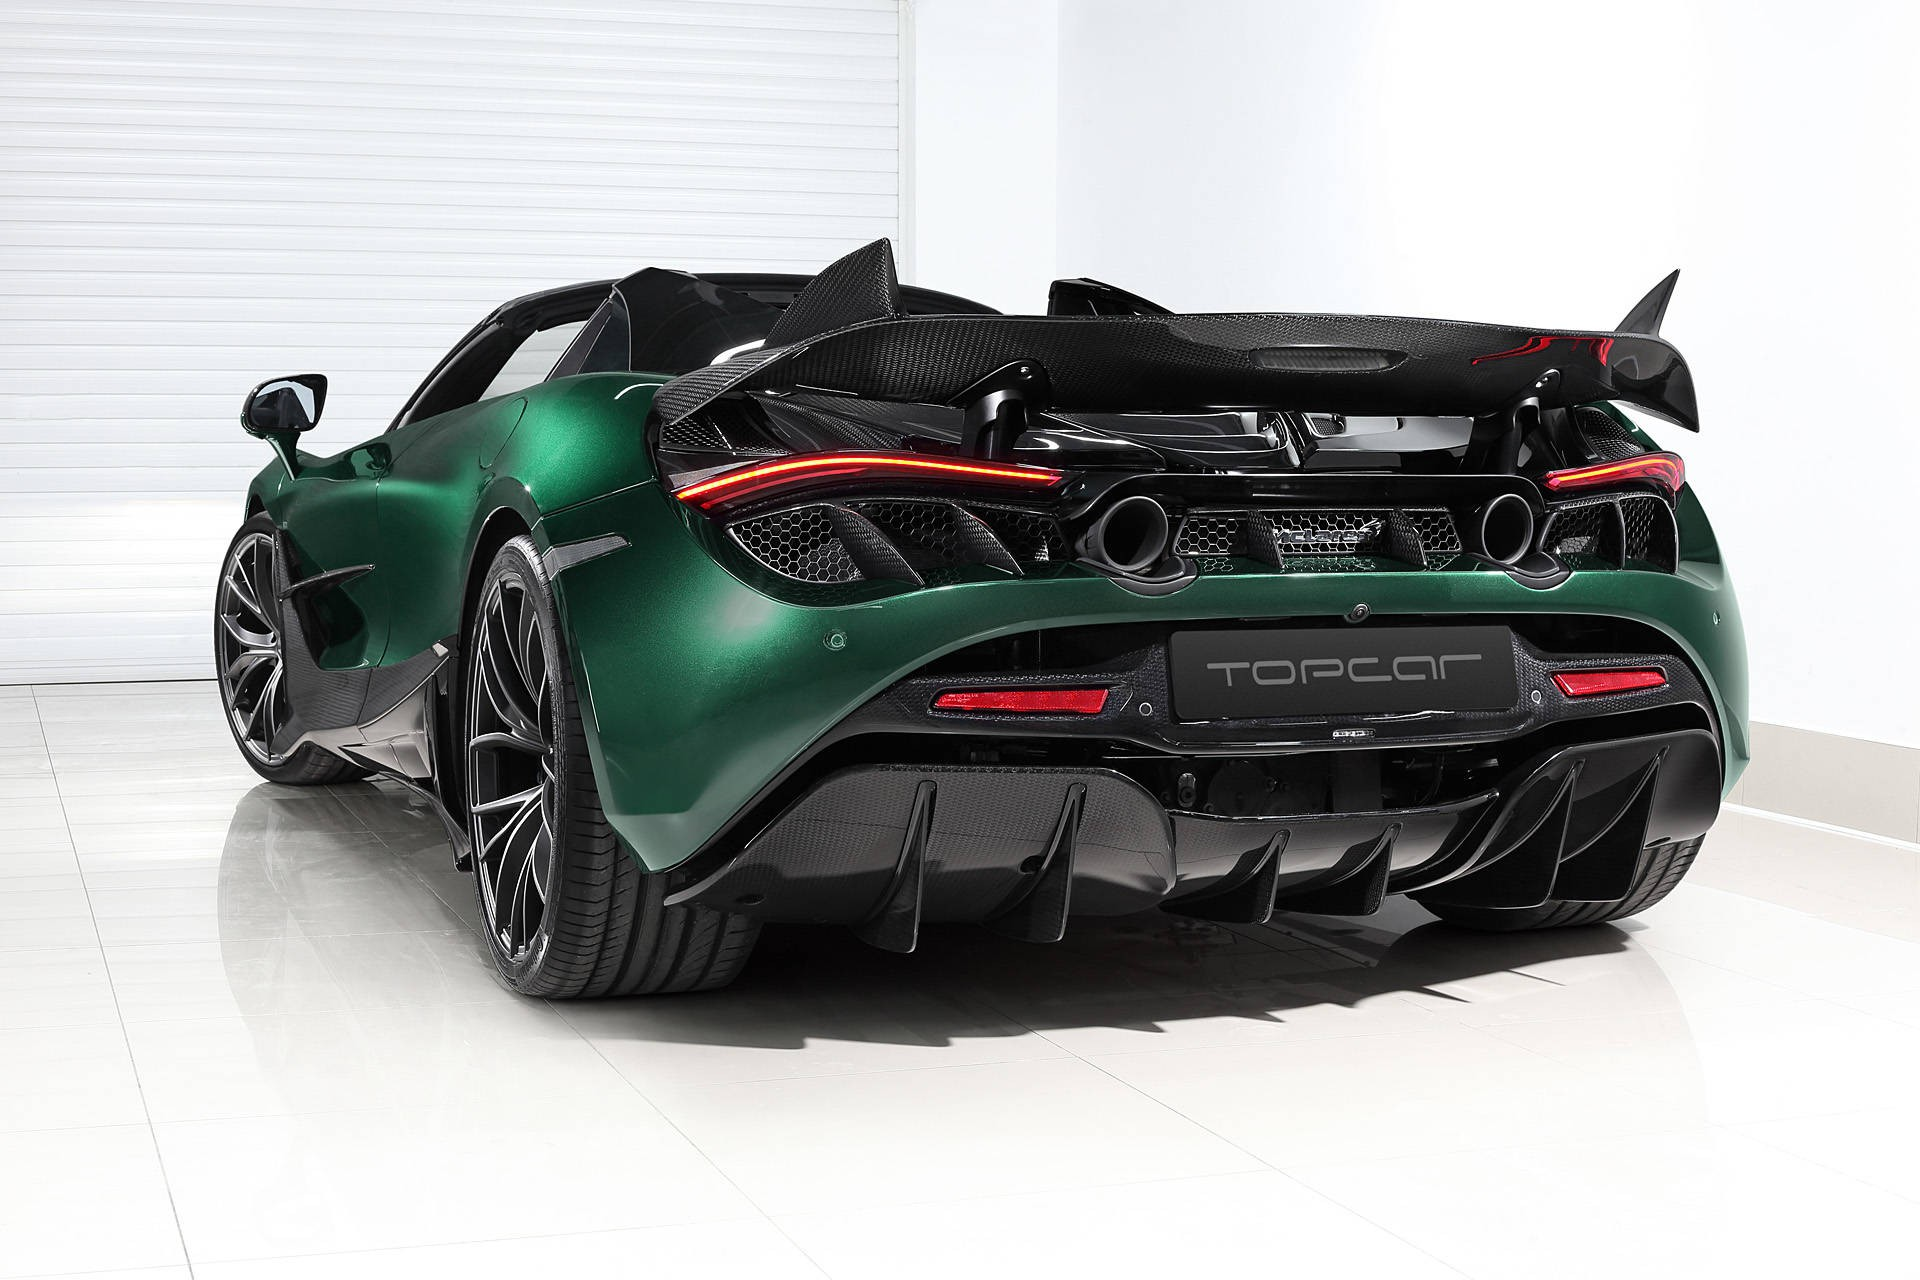 McLaren-720S-Spider-Fury-by-TopCar-for-sale-6